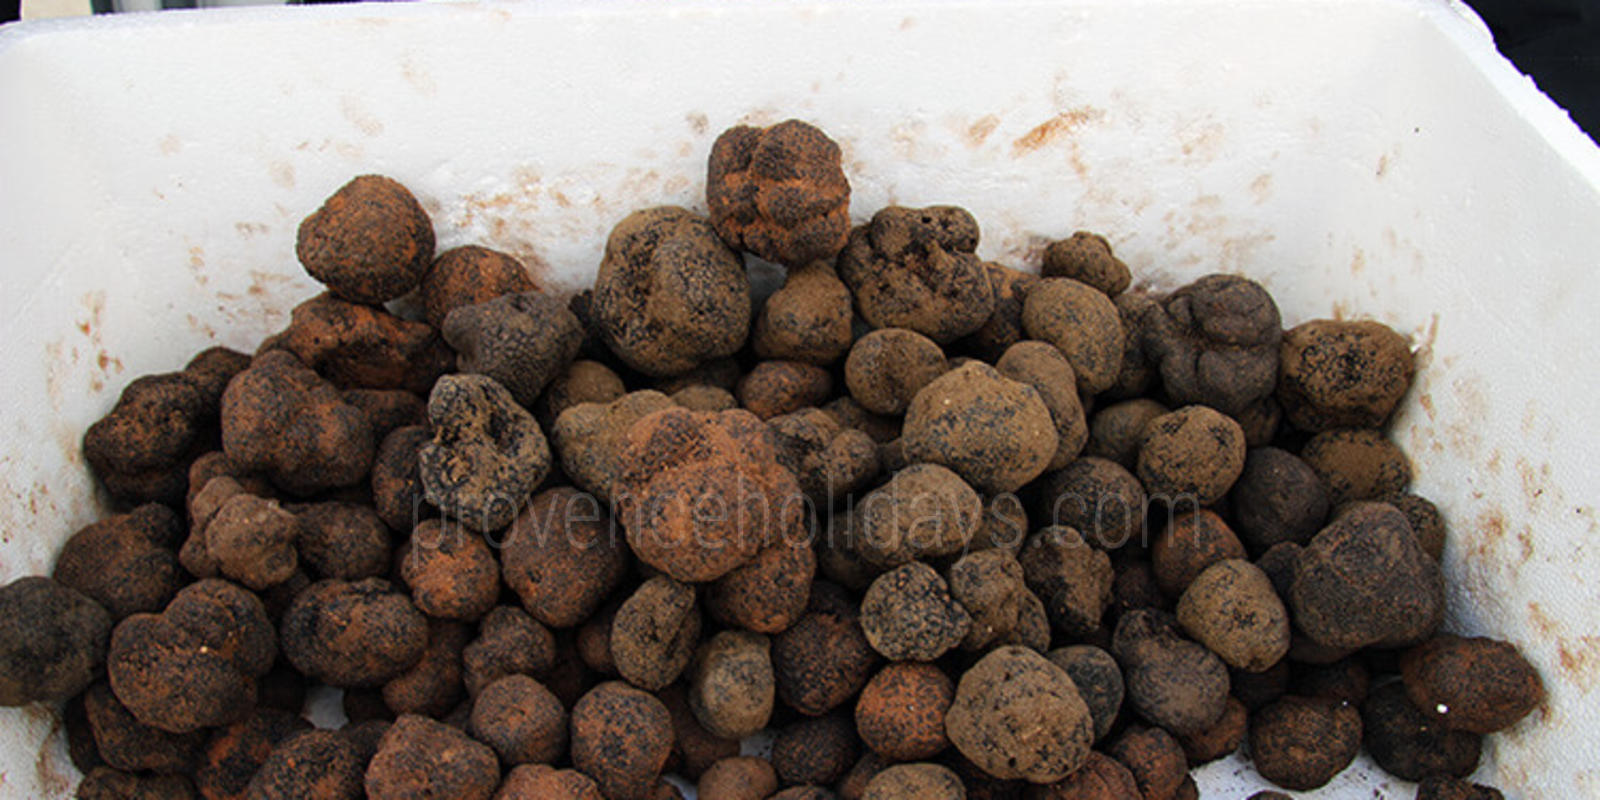 Richerenches truffle market - 0